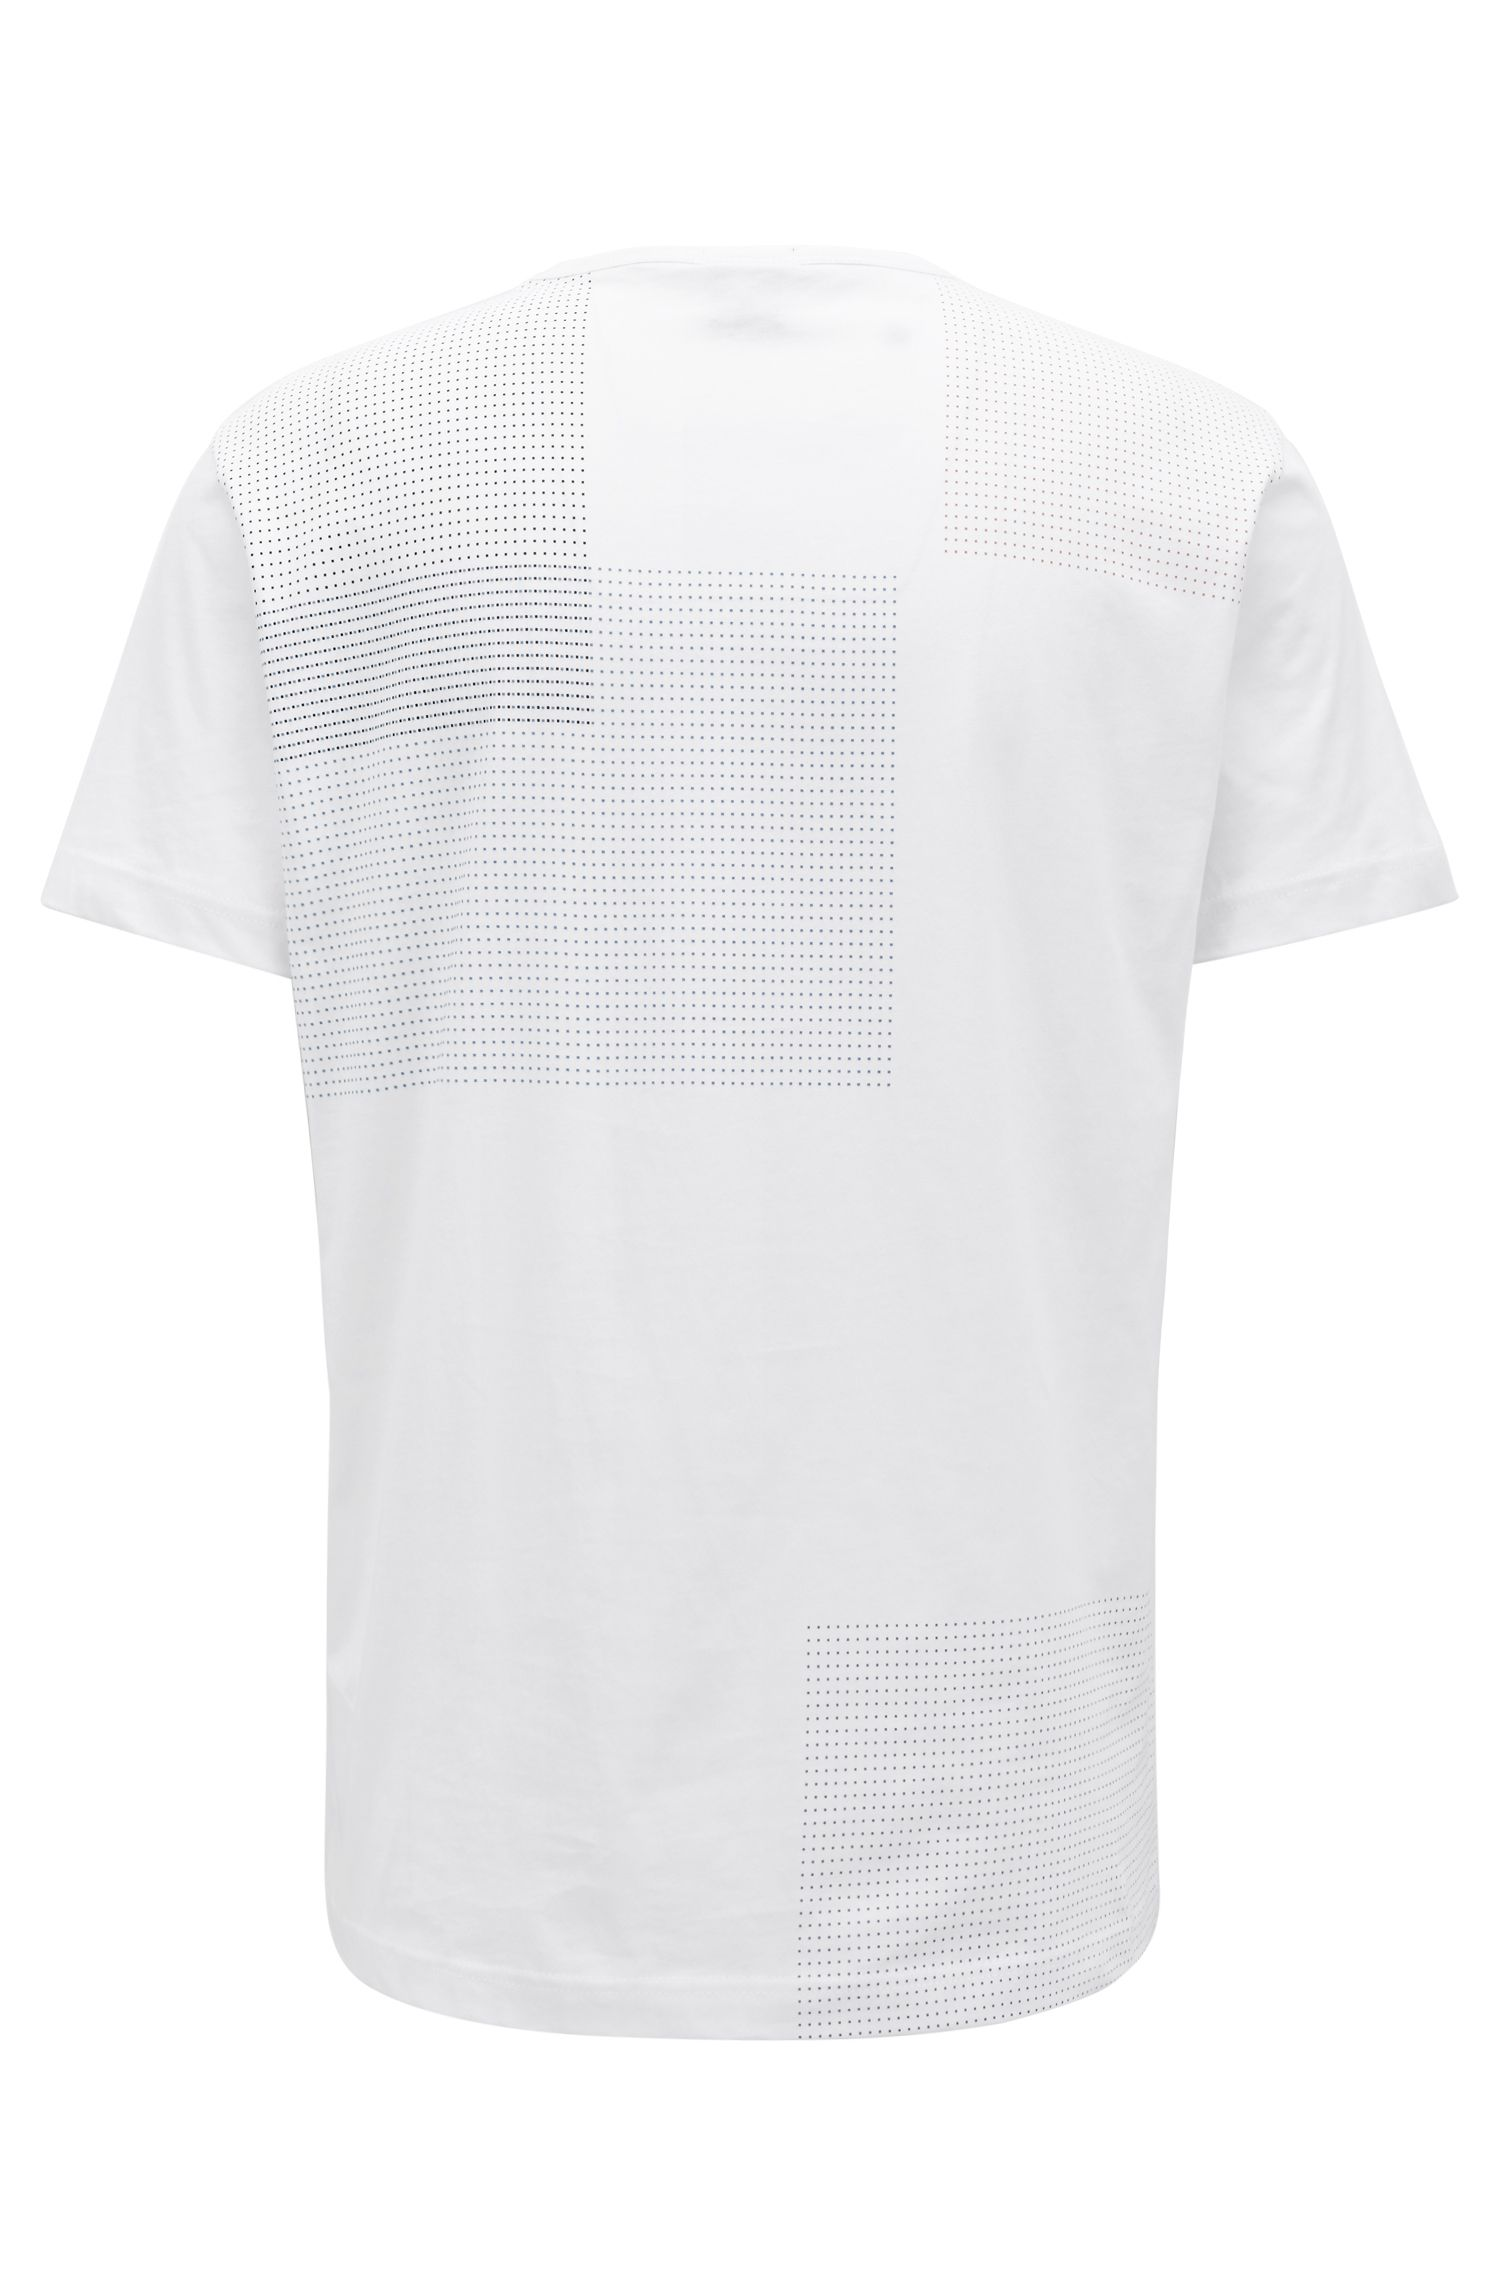 Logo T-shirt in single-jersey cotton with printed artwork, White